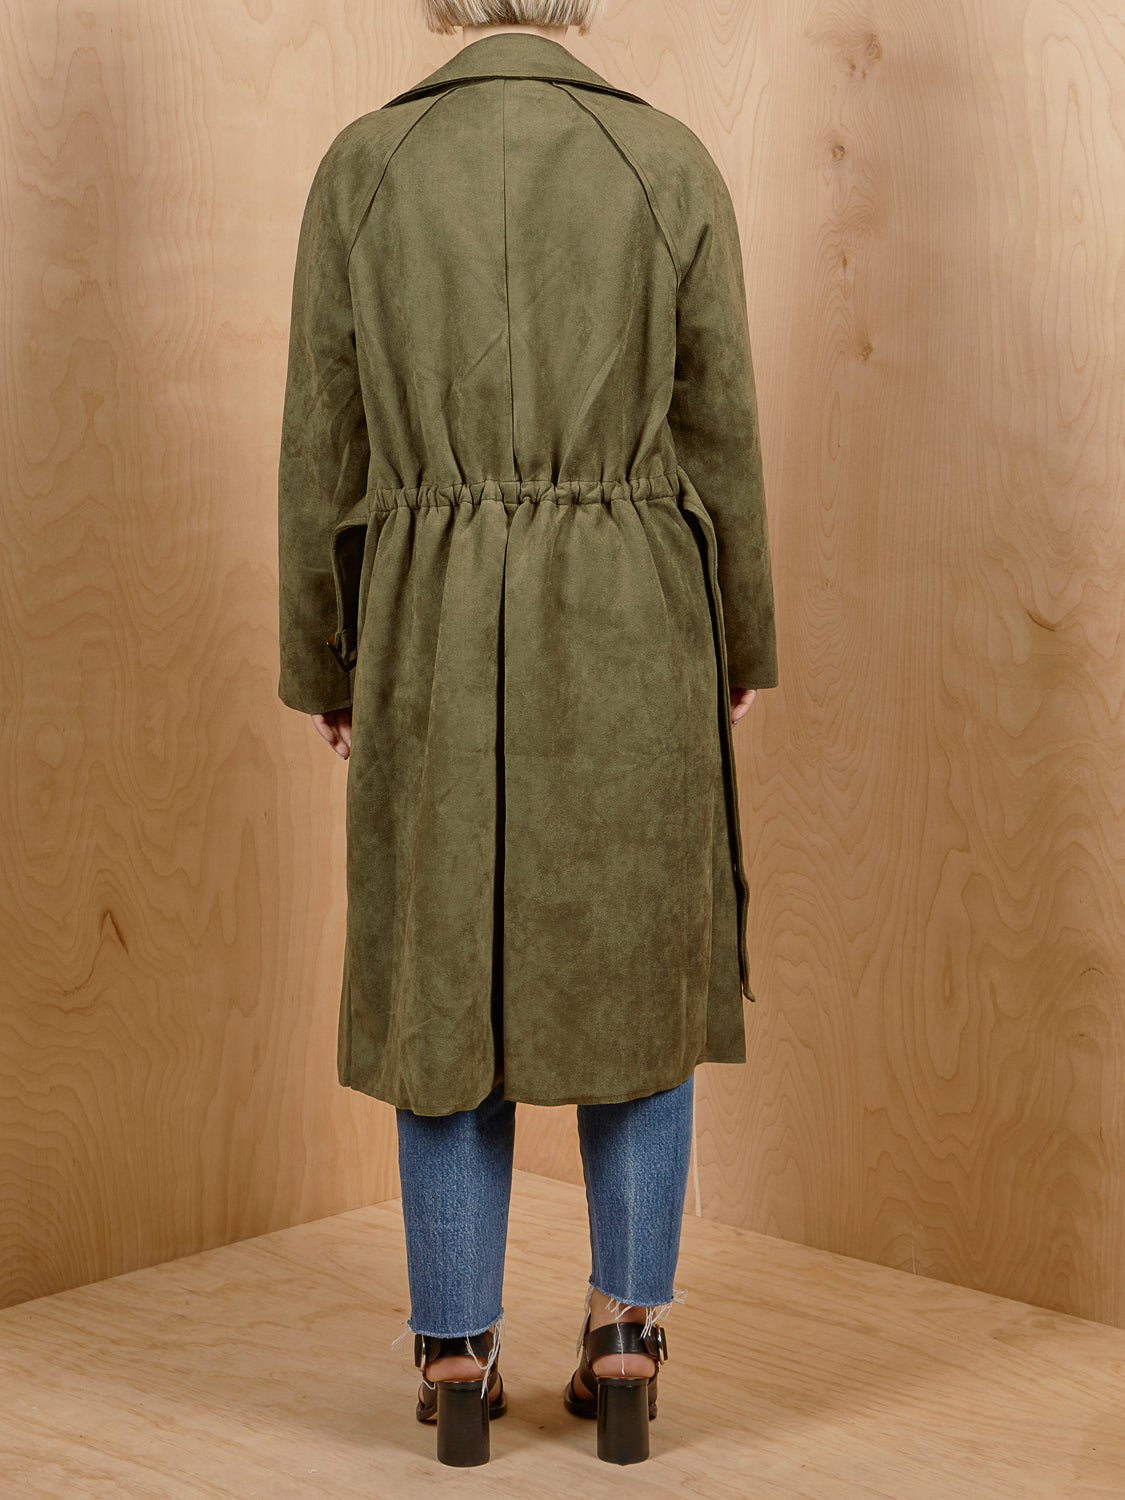 FAVLUX Green Faux Suede Trench Coat